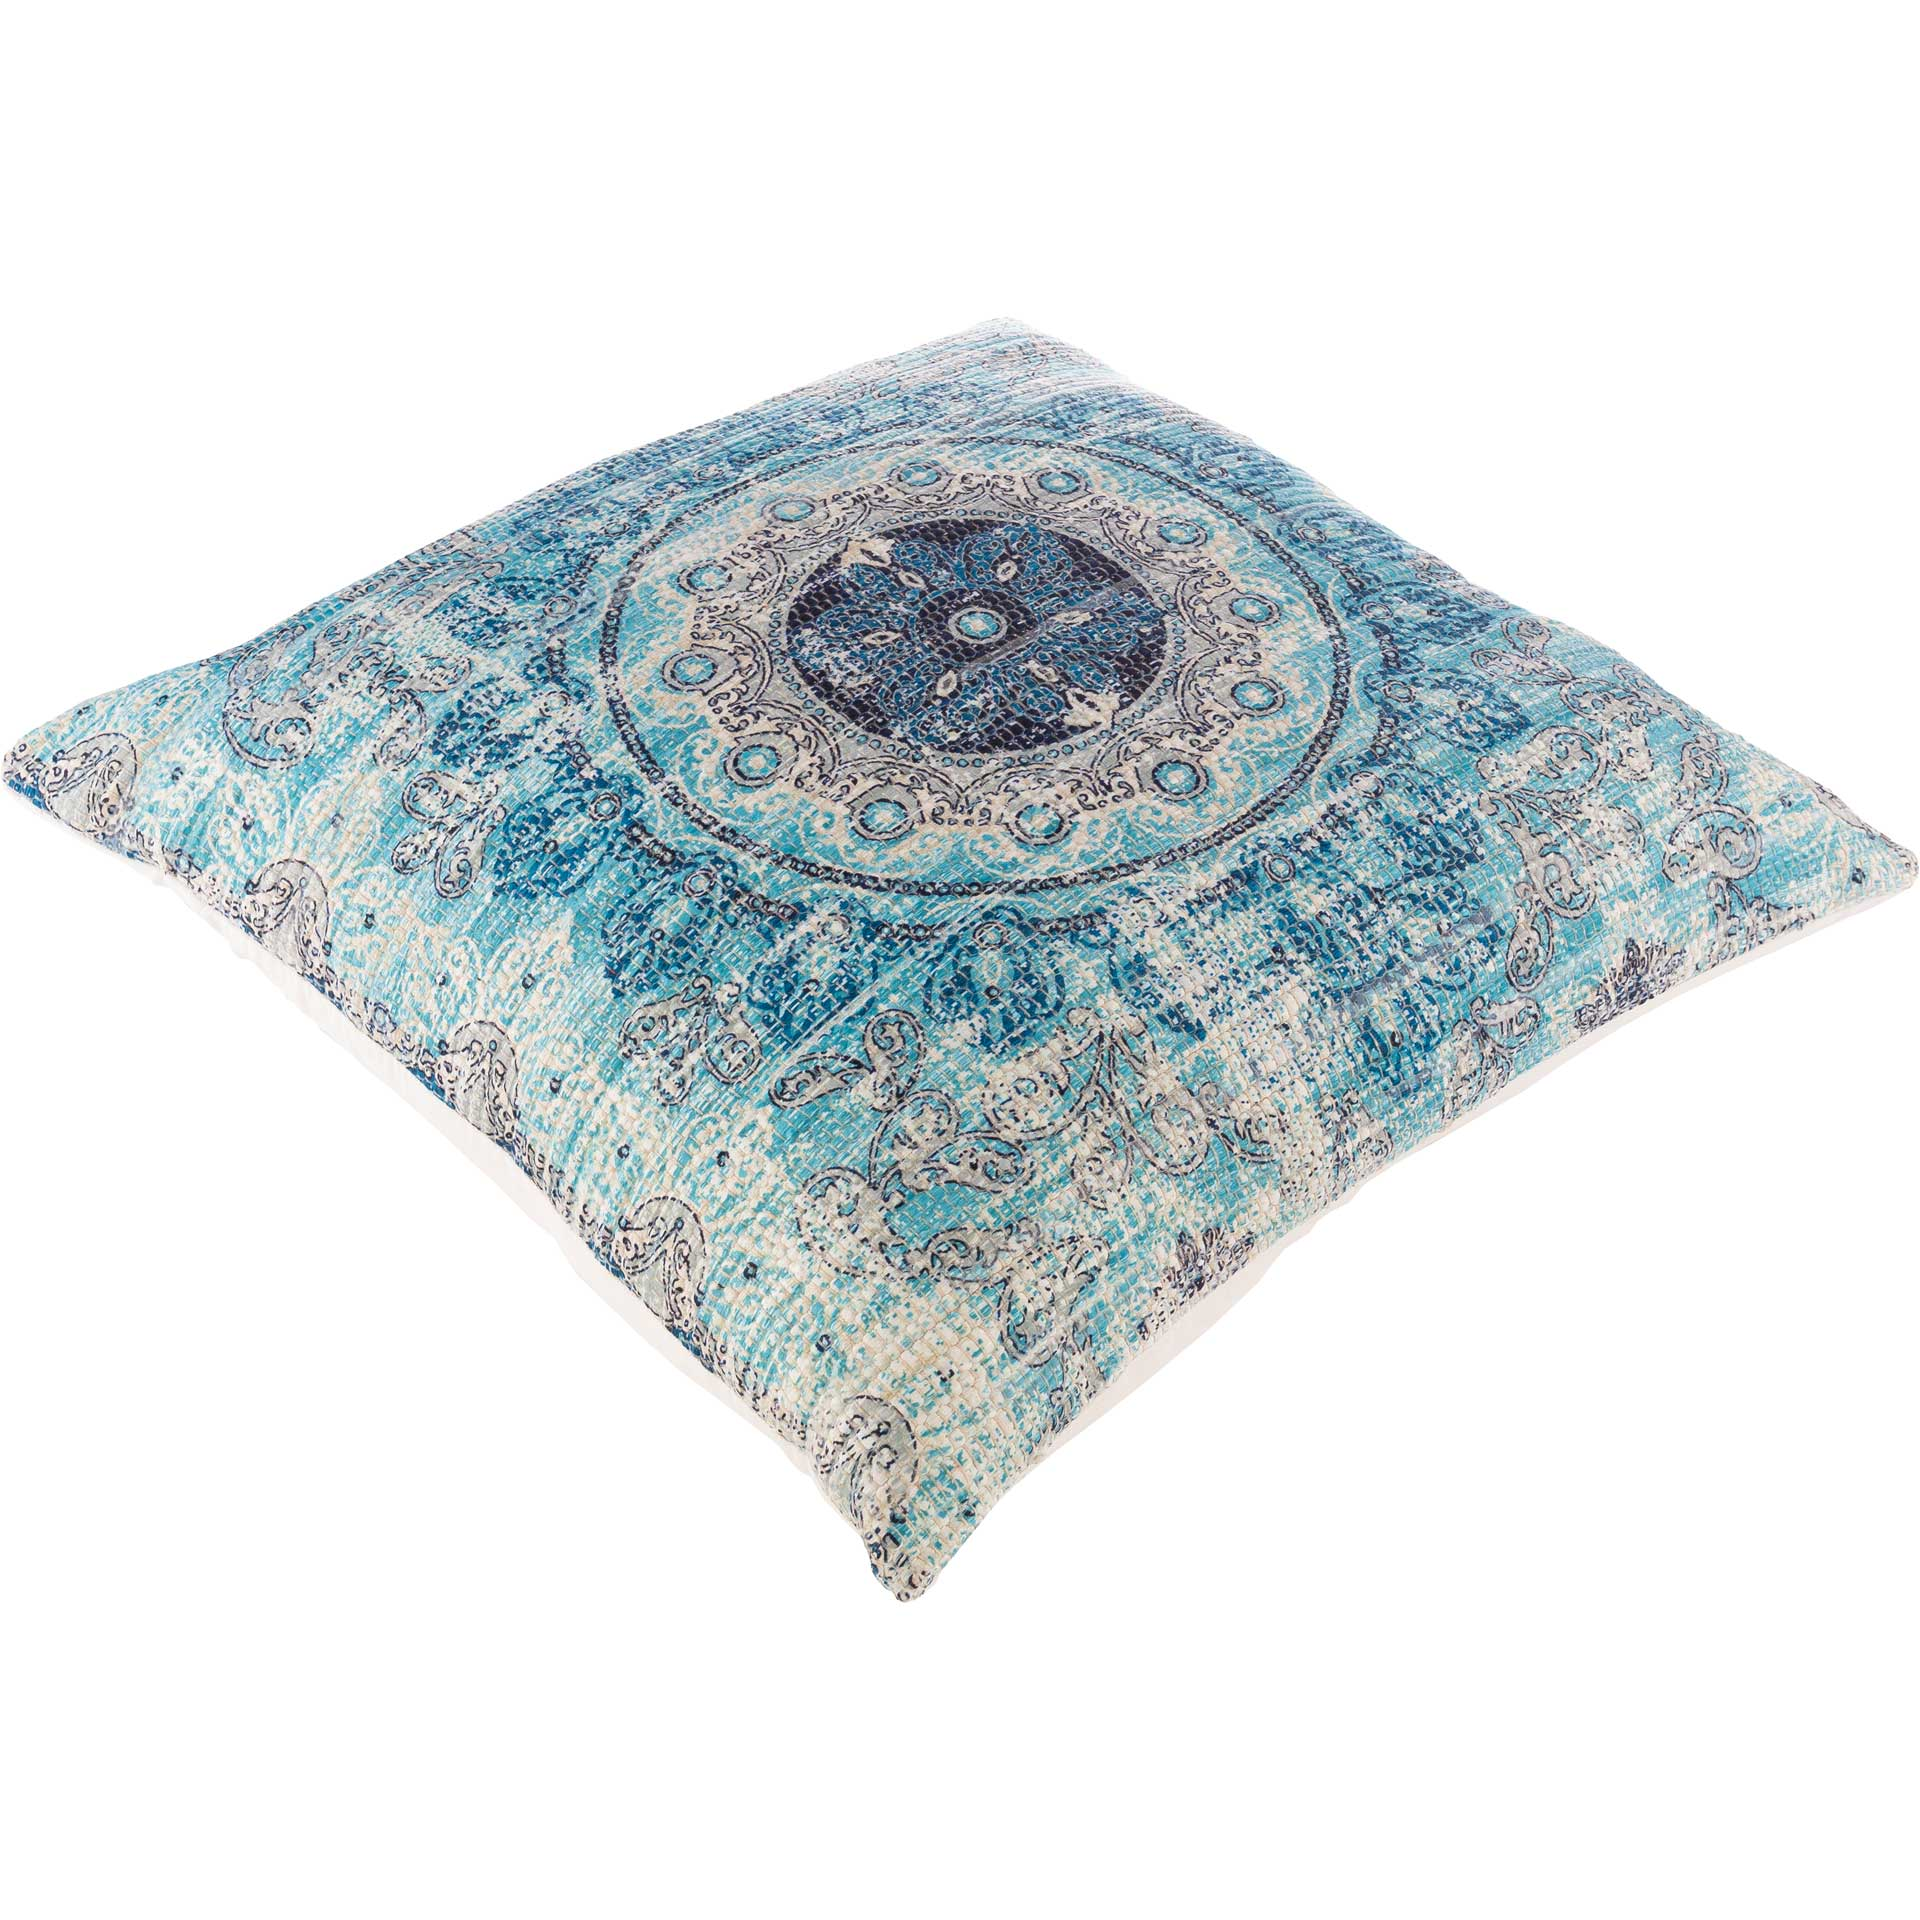 Derek Pillow Aqua/Beige/Bright Blue